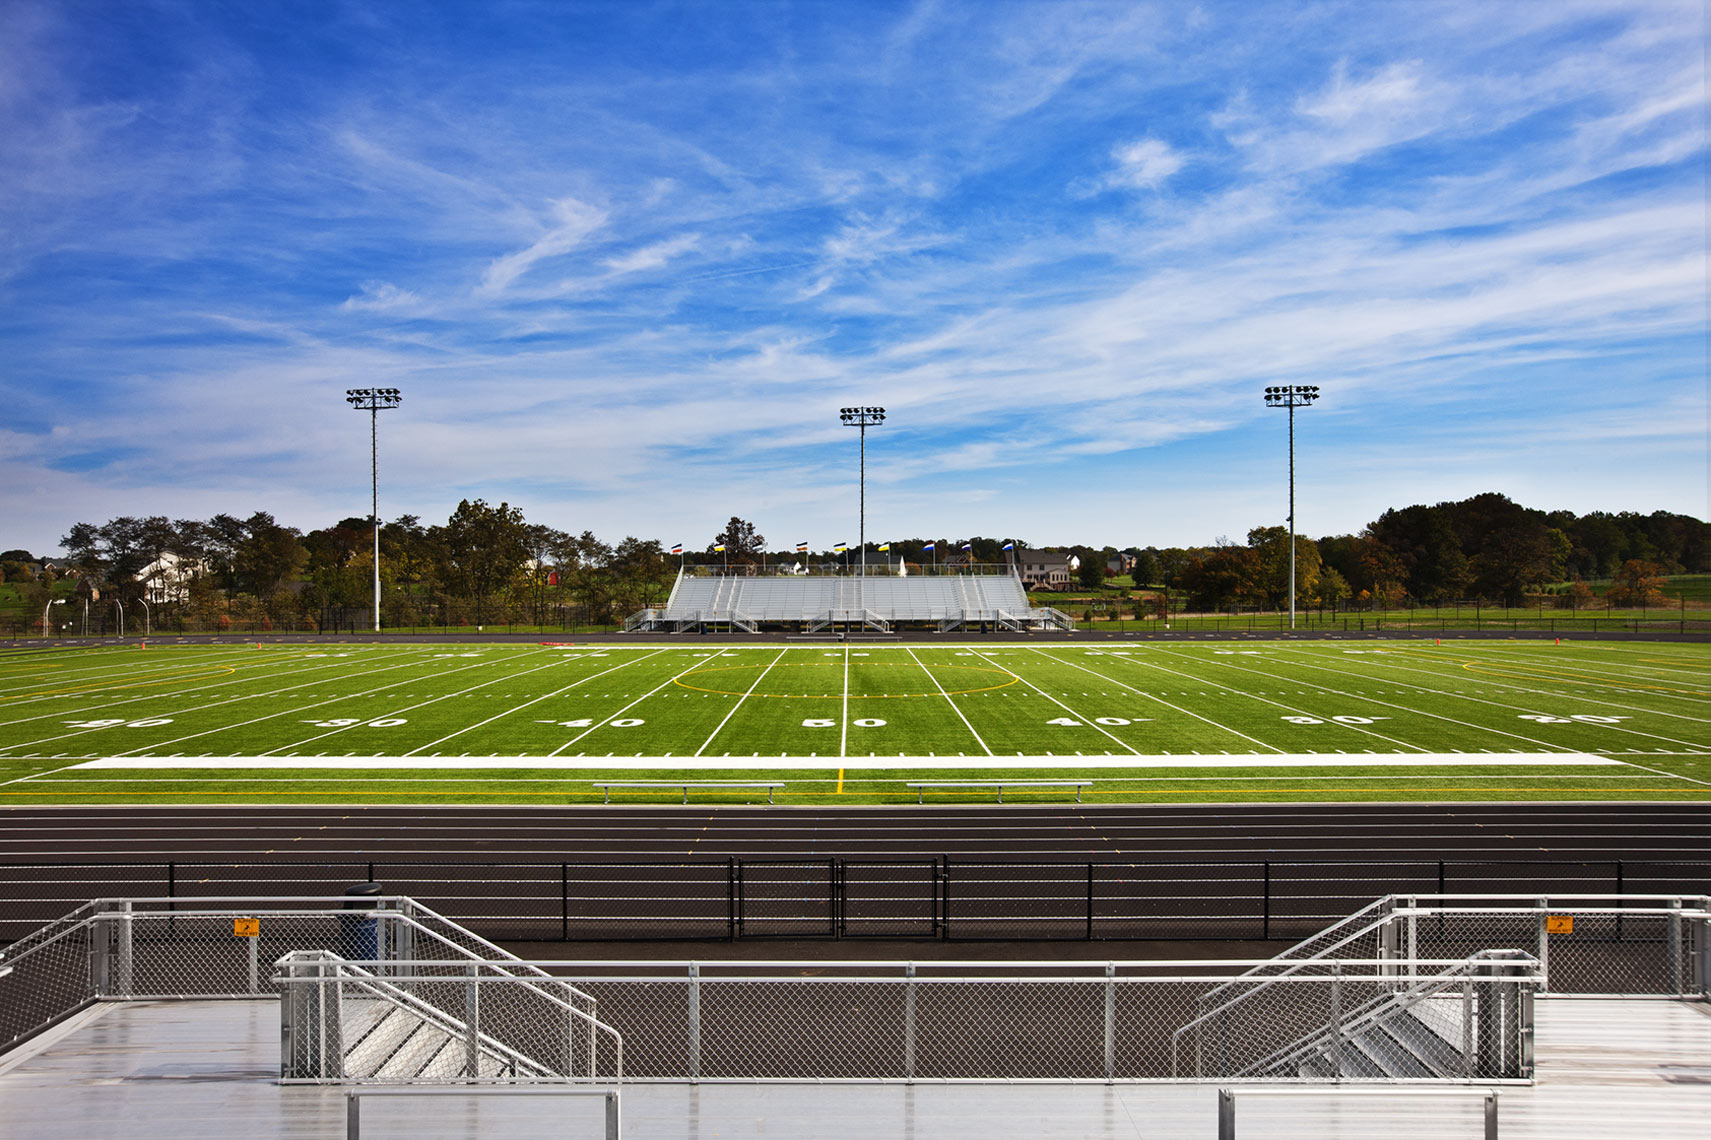 Architectural of Engineering photo of a high school football field